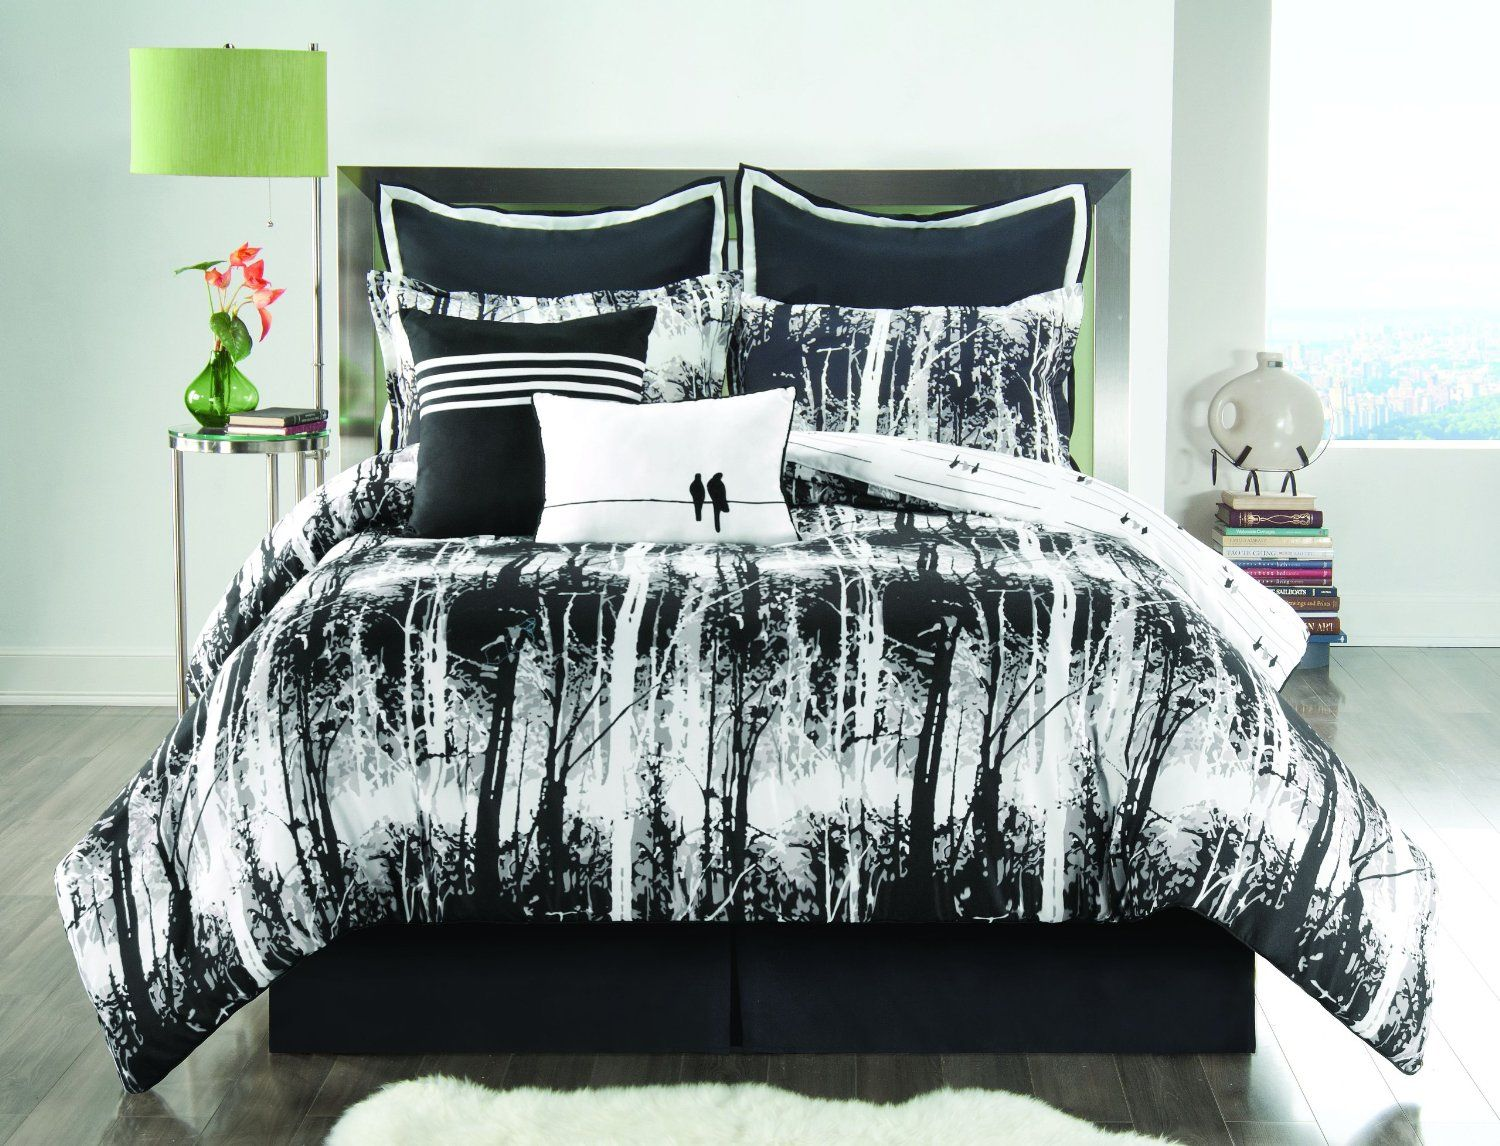 25 Awesome Bed Sets For Your Home | Black white bedding, Twin ... : black and white king quilt set - Adamdwight.com